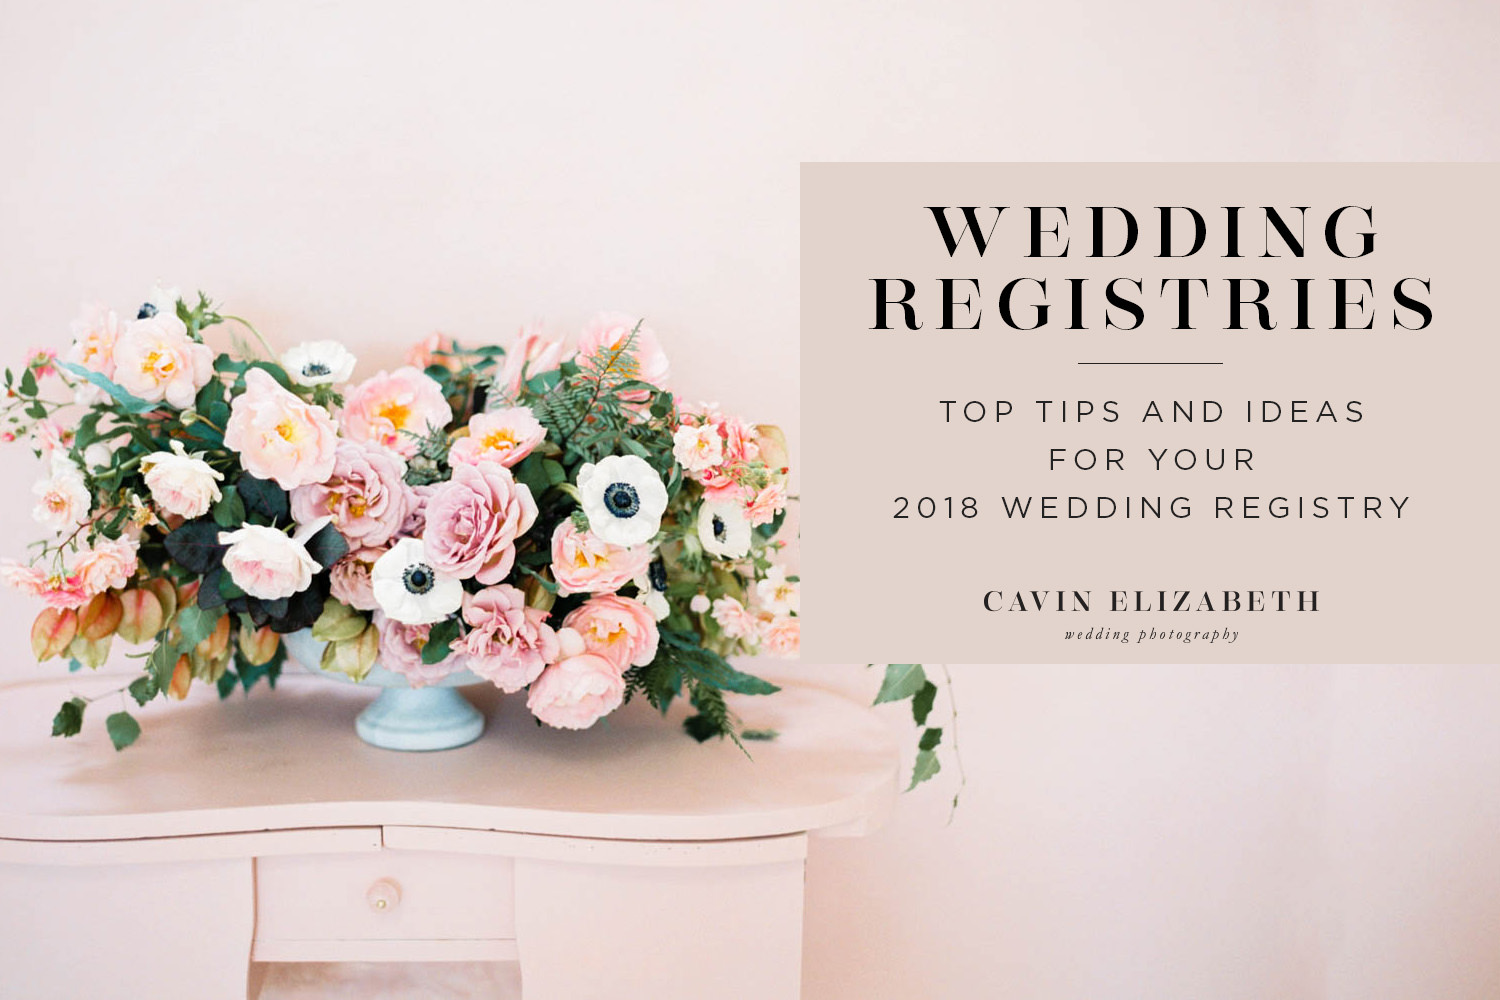 Top Wedding Registry Ideas and Tips for 2018 Weddings